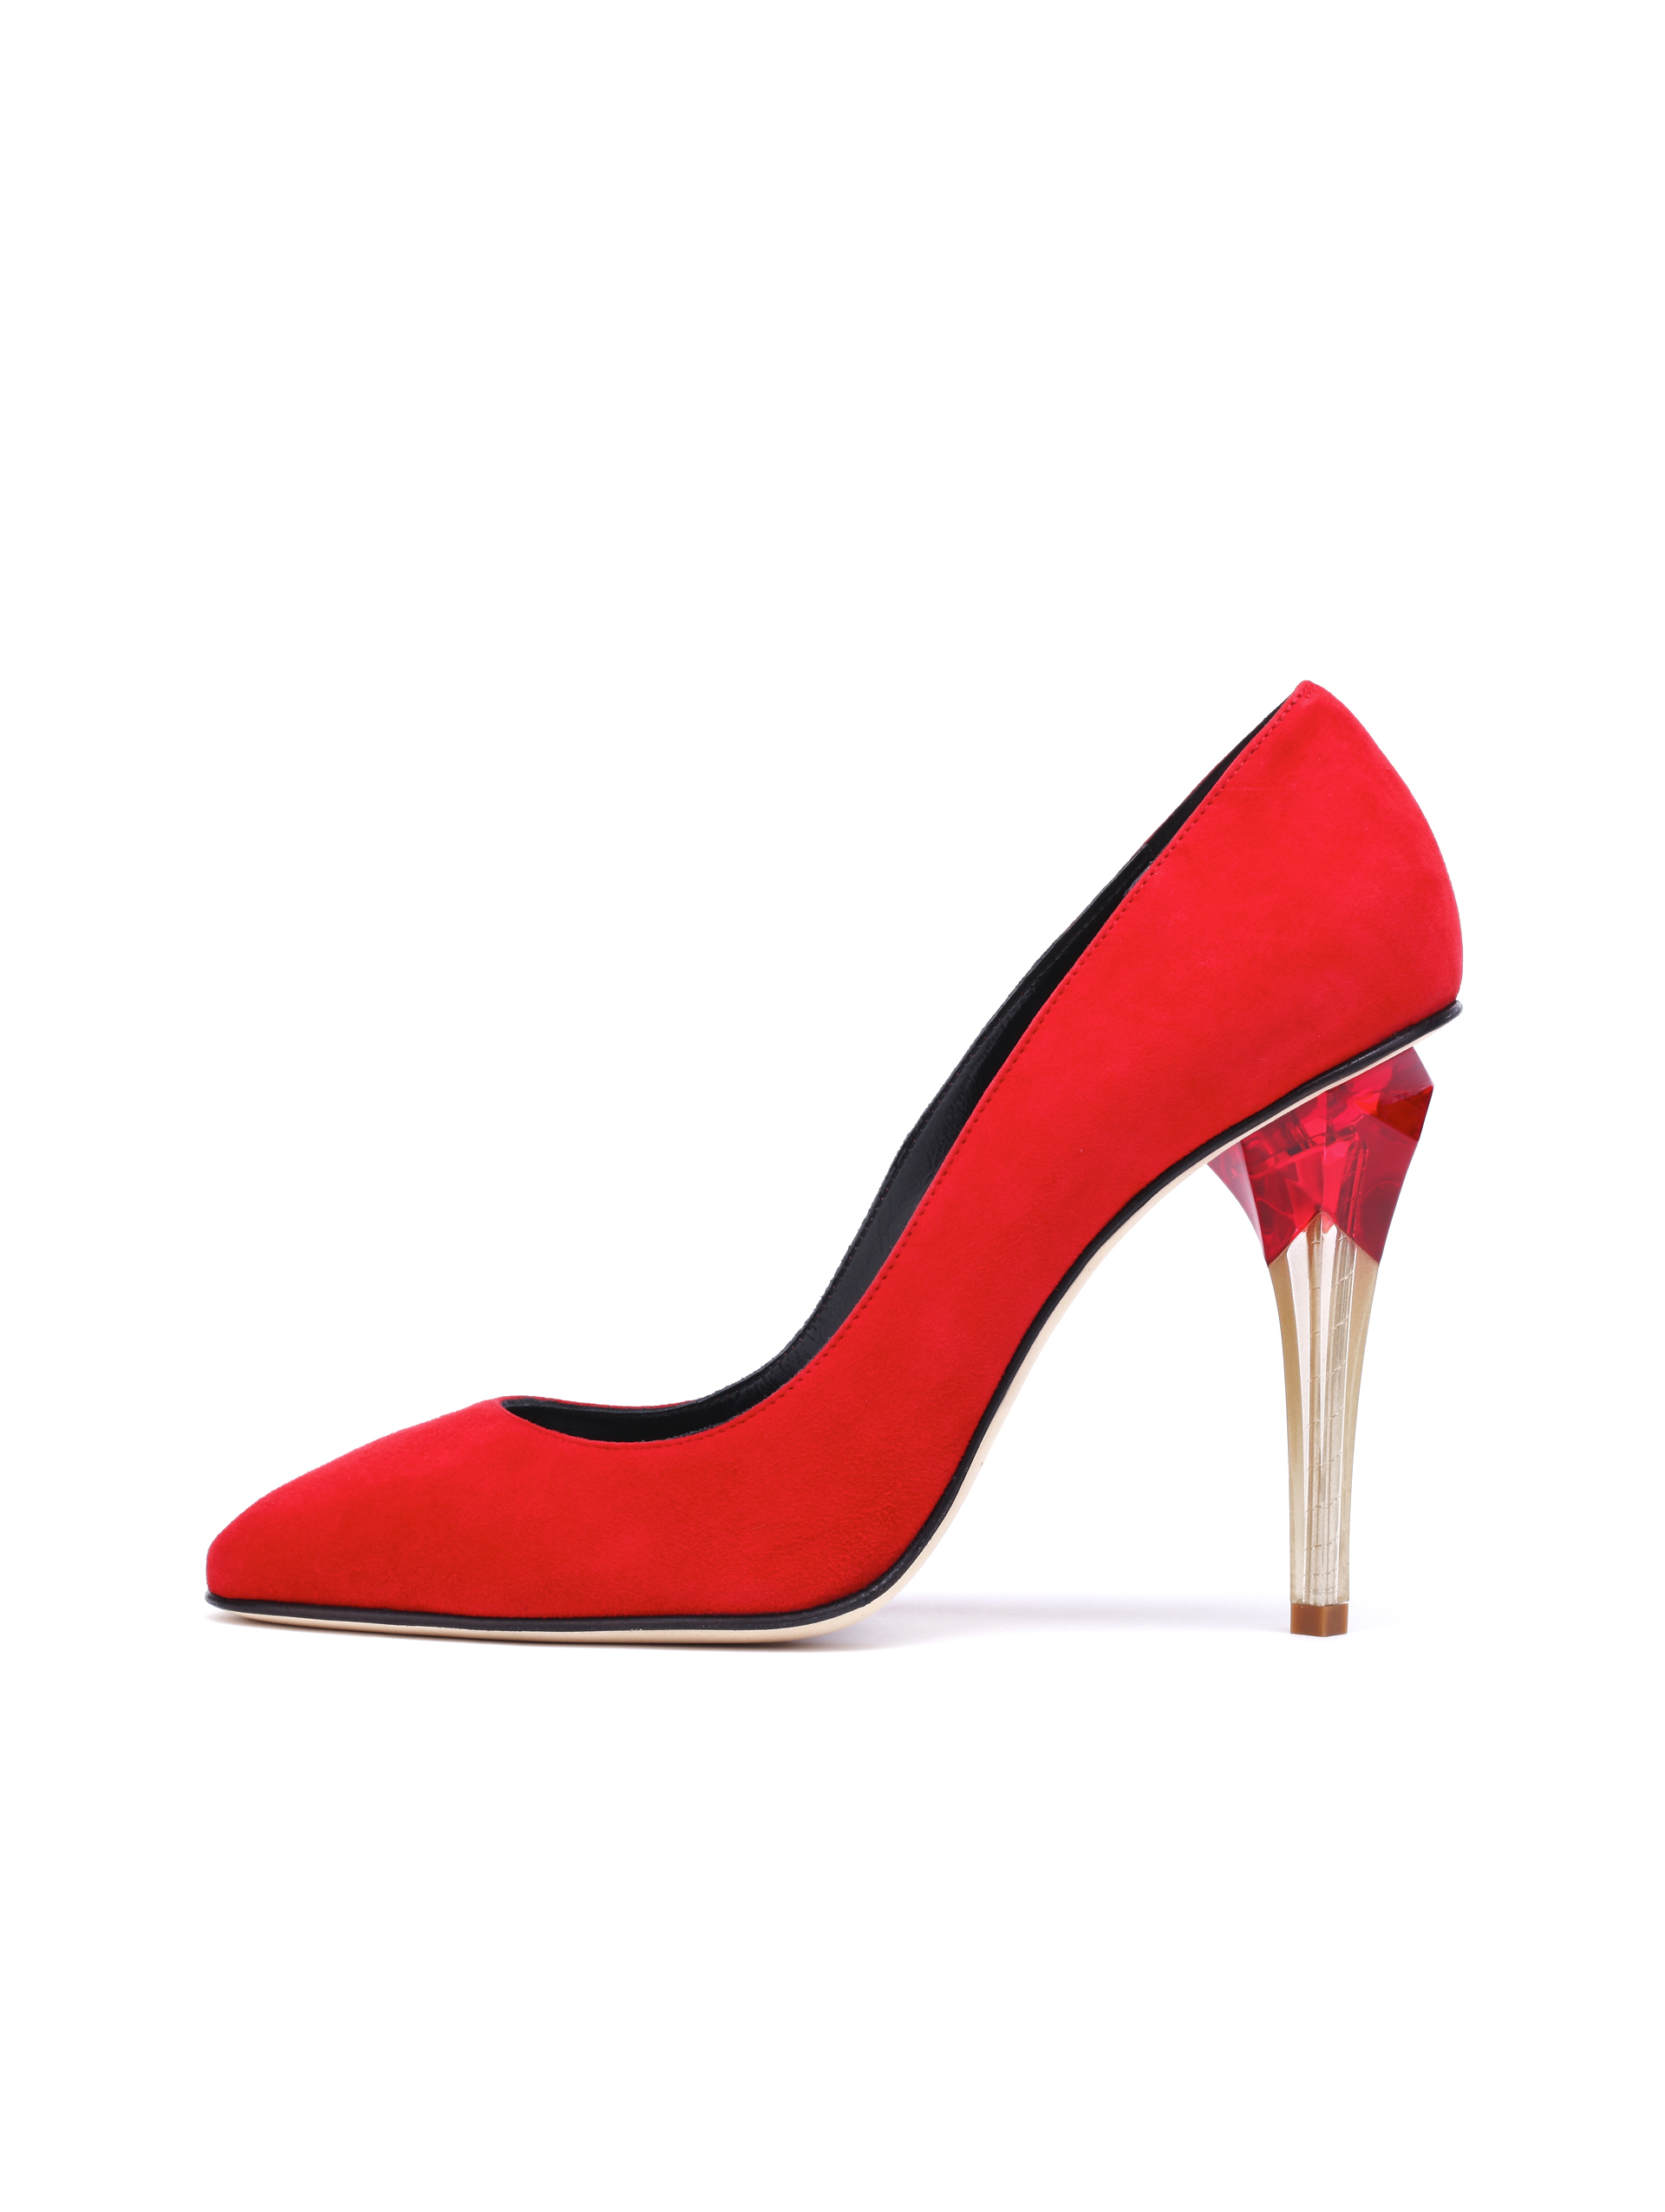 Lyst - Oscar de la Renta Suede Pia Pumps With Lucite Heel in Red